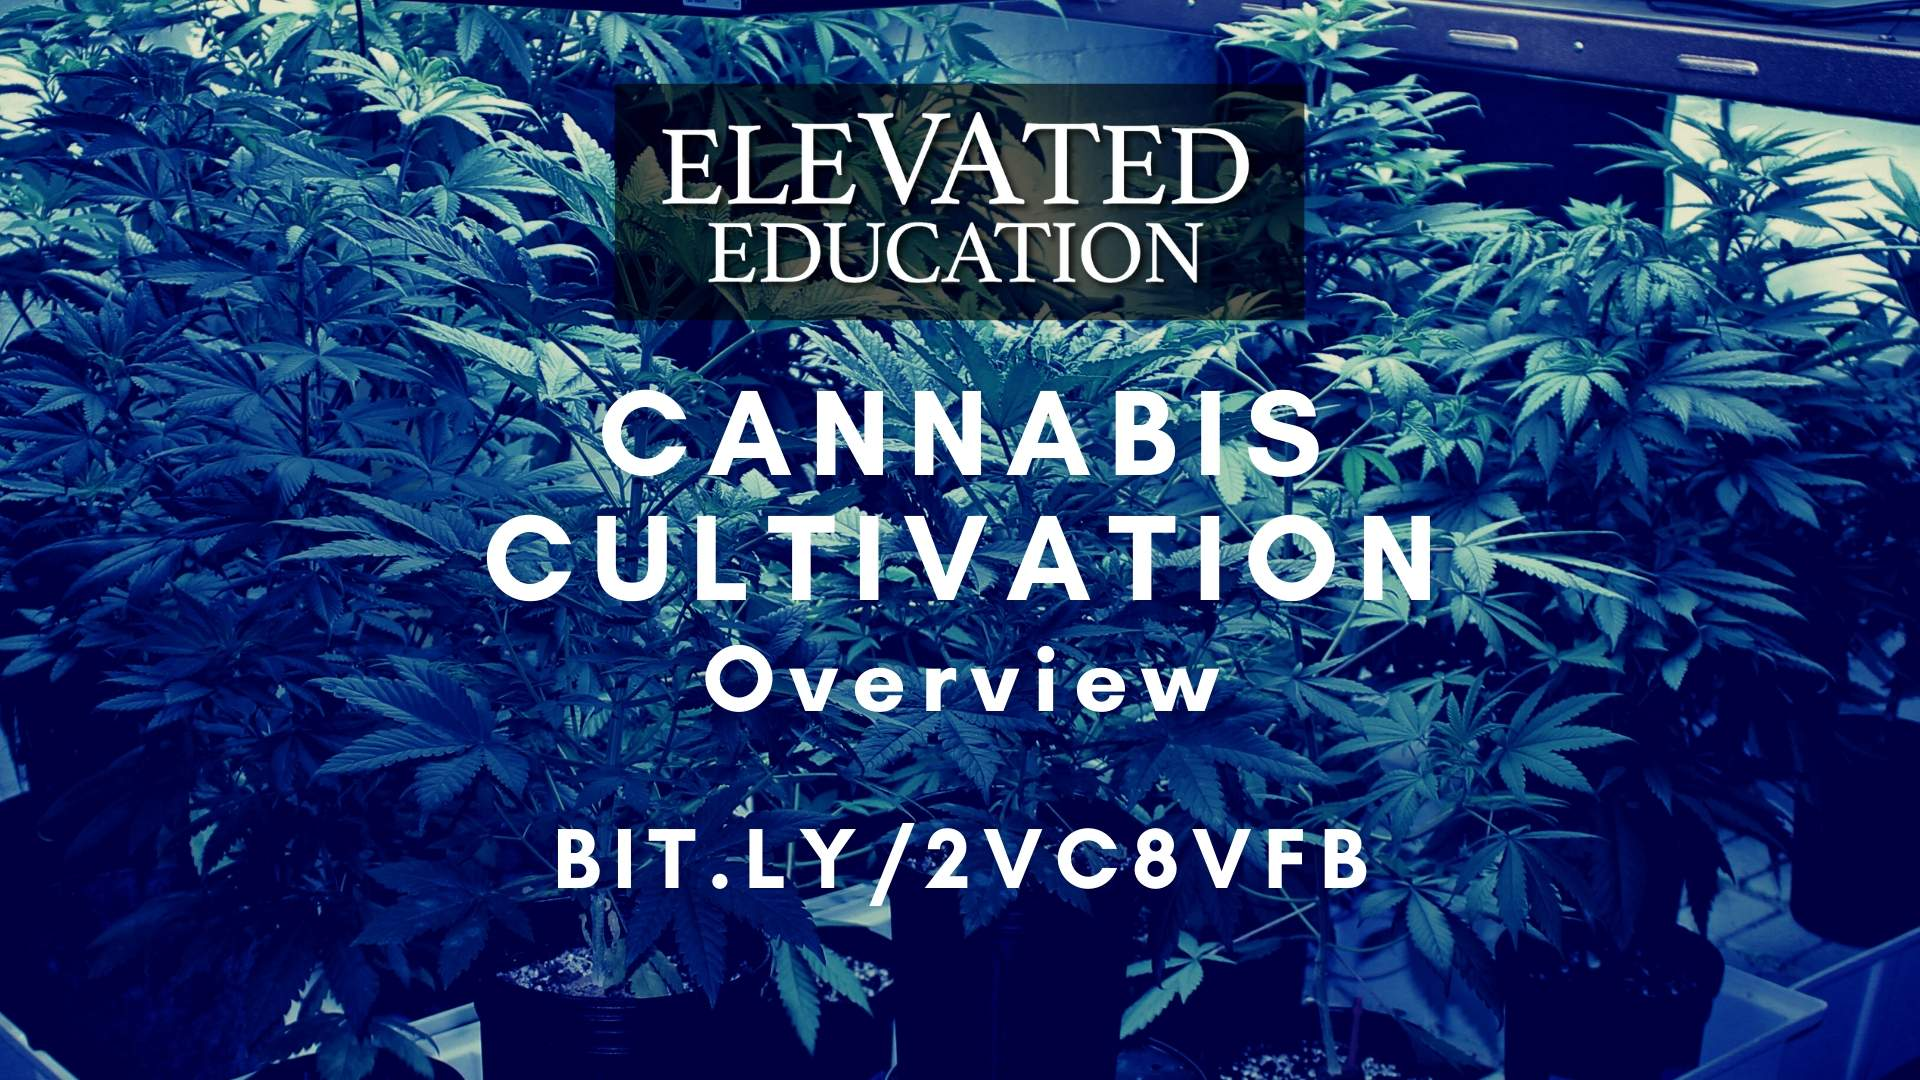 Cannabis Cultivation Overview (Elevated Education)